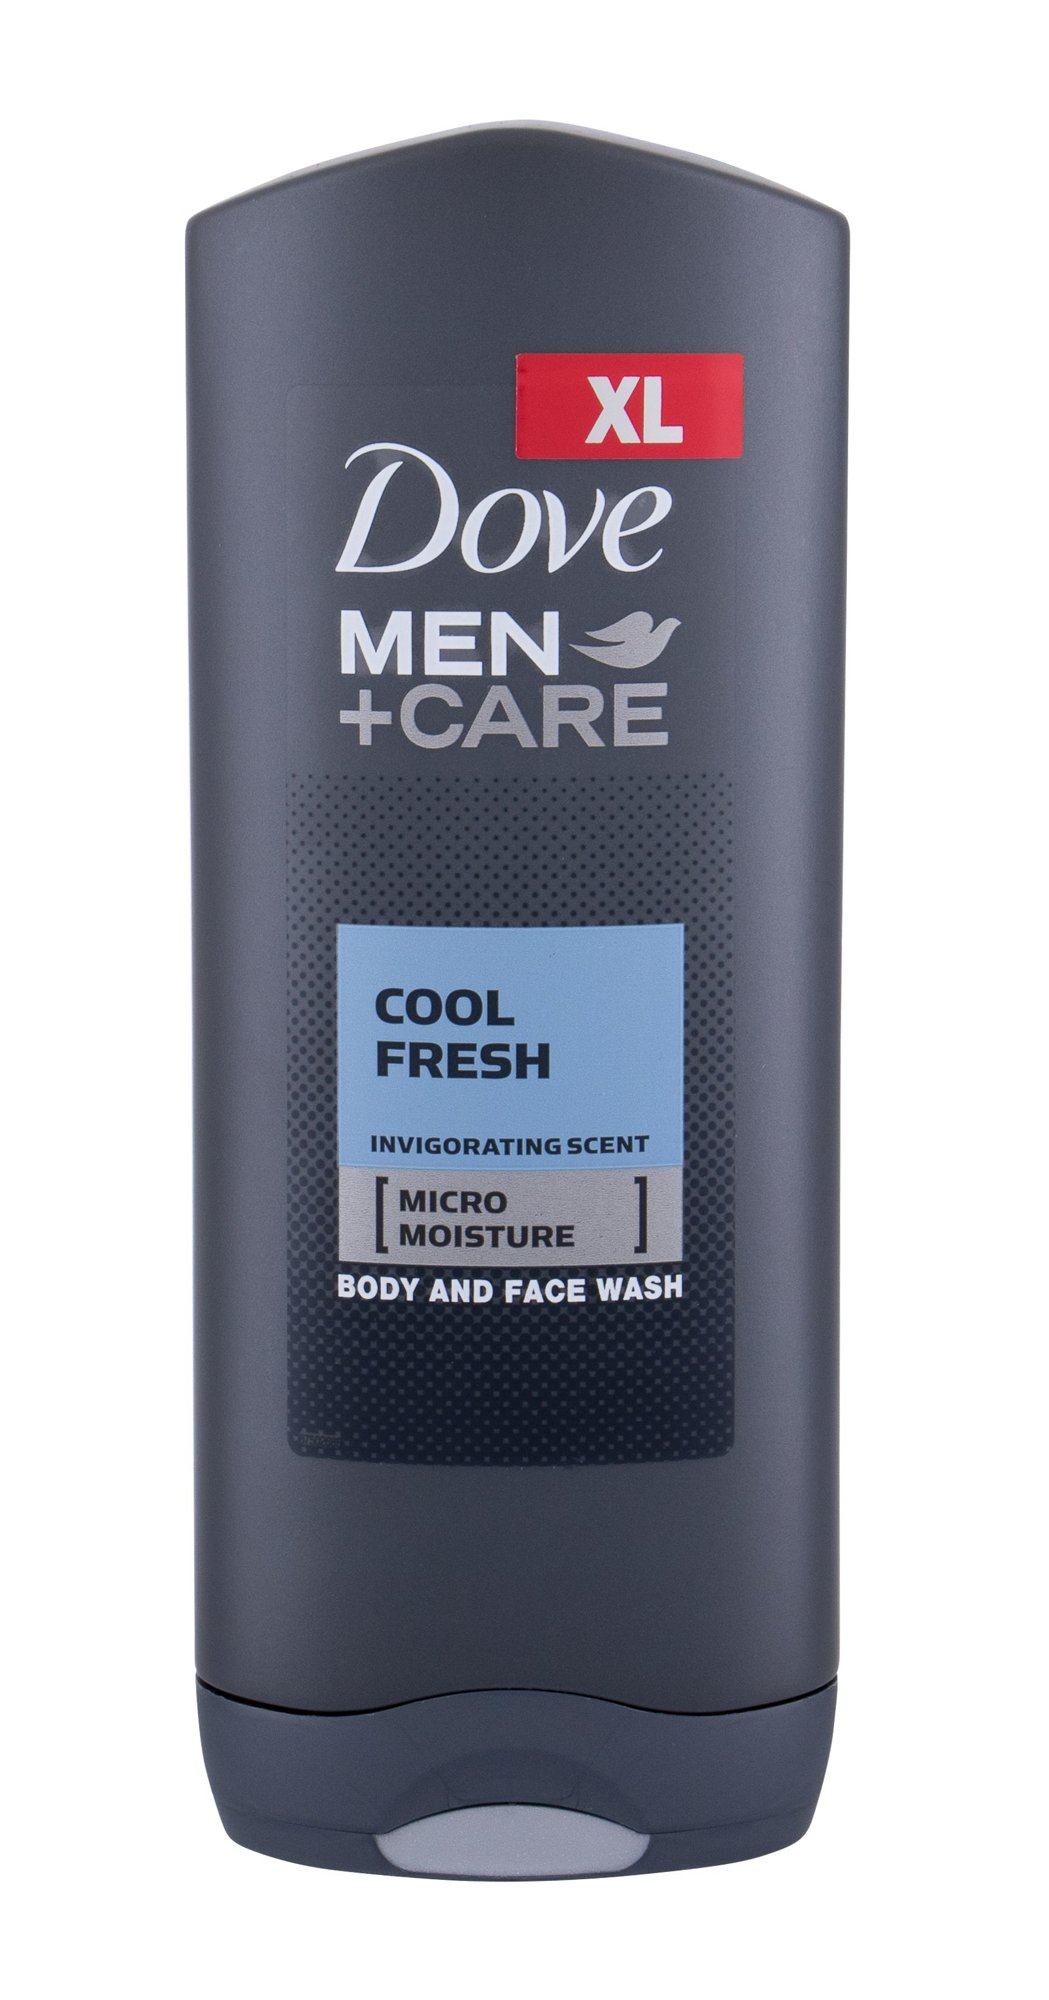 Dove Men + Care Cool Fresh, tusfürdő gél 400ml